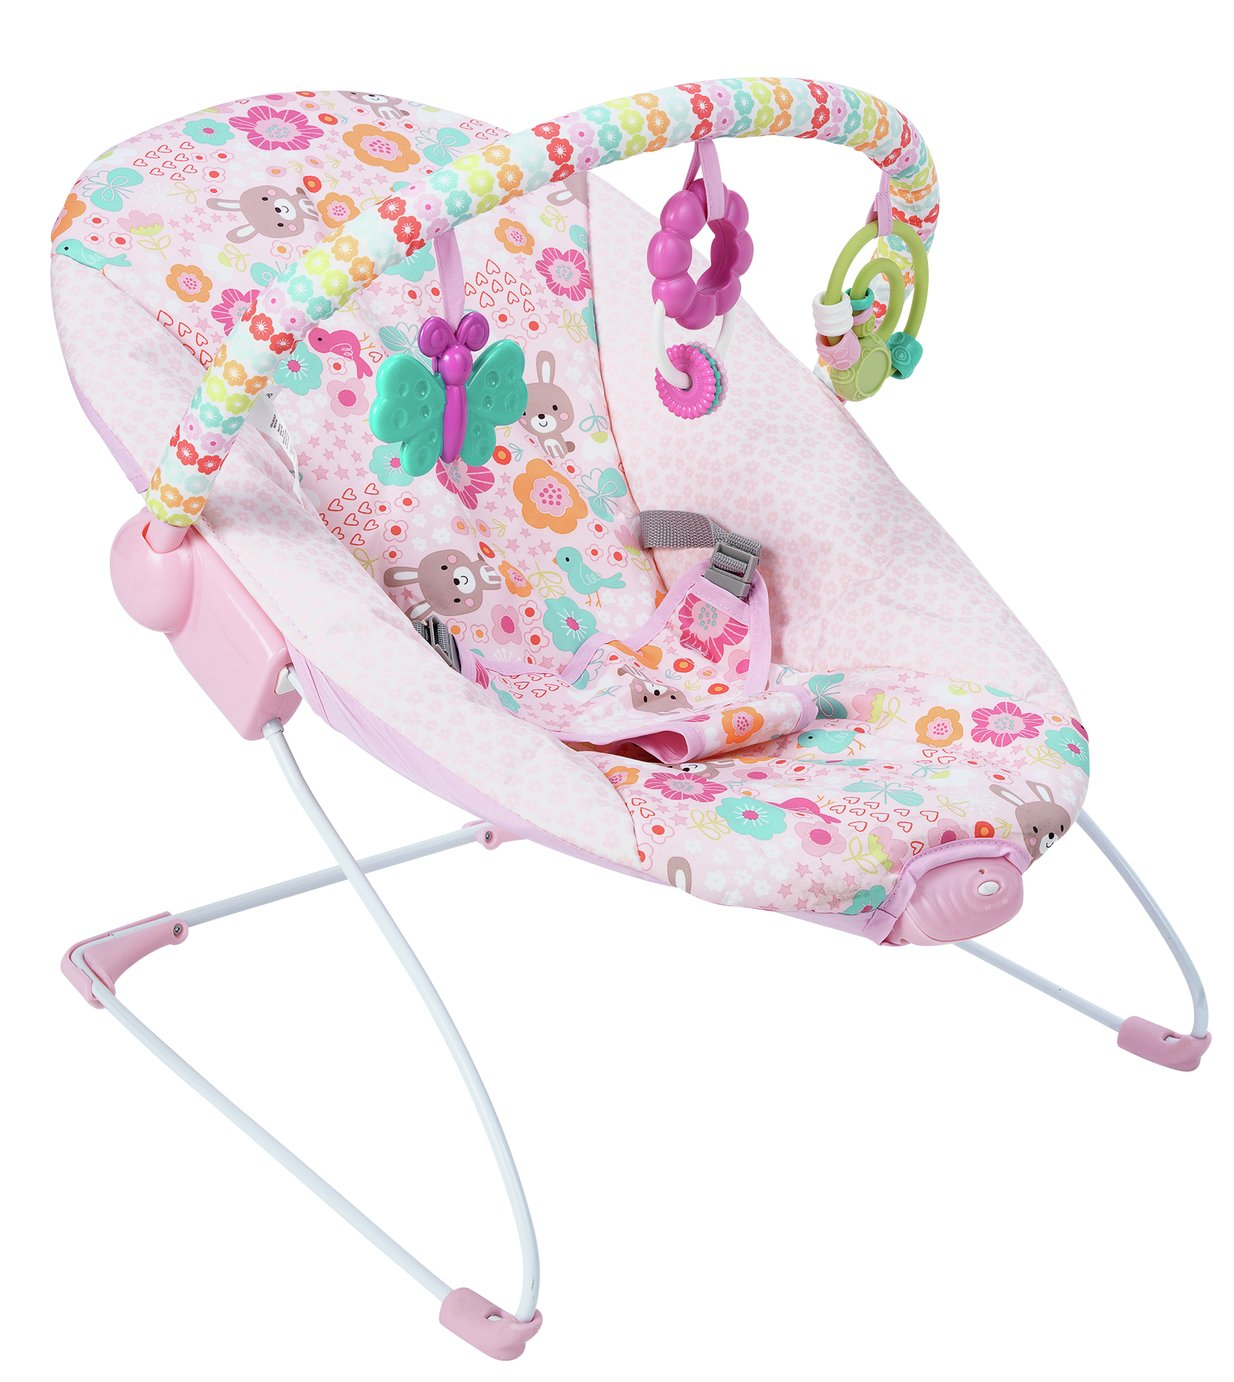 Chad Valley Princess Deluxe Baby Bouncer - Pink